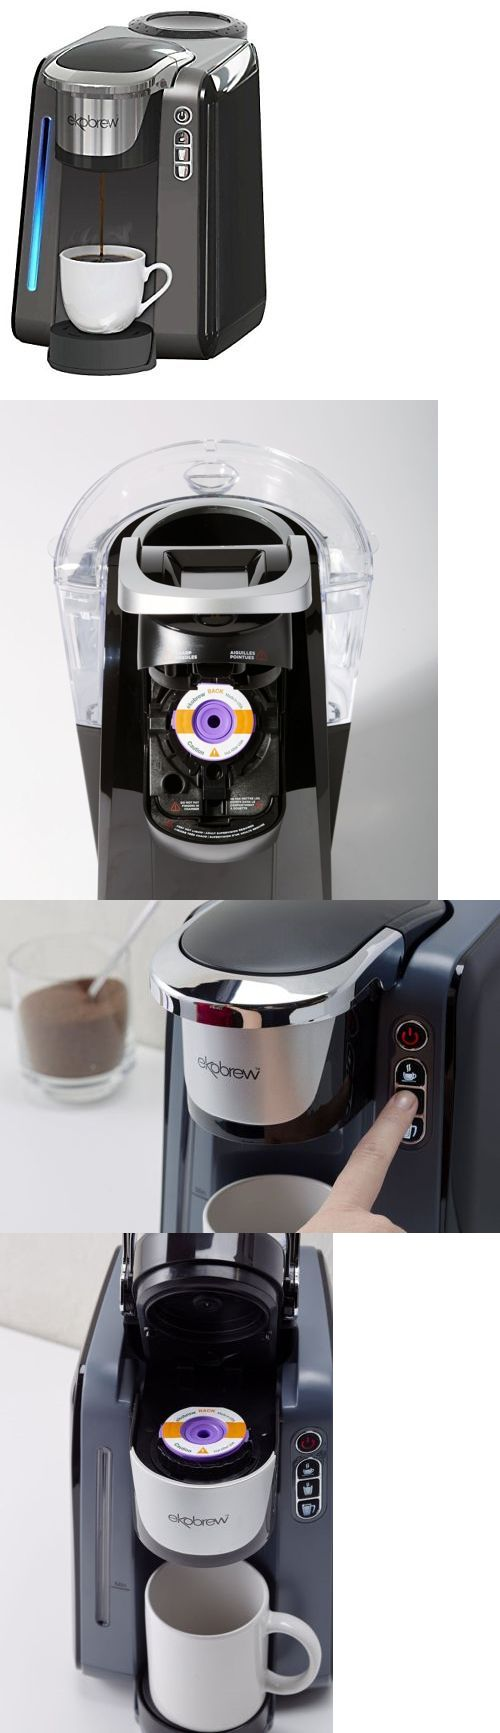 Coffee Makers Automatic 65635: Ekobrew Single Cup Coffee Maker For K-Cups Reusable Coffee Filter Included K Cup -> BUY IT NOW ONLY: $69.99 on eBay!